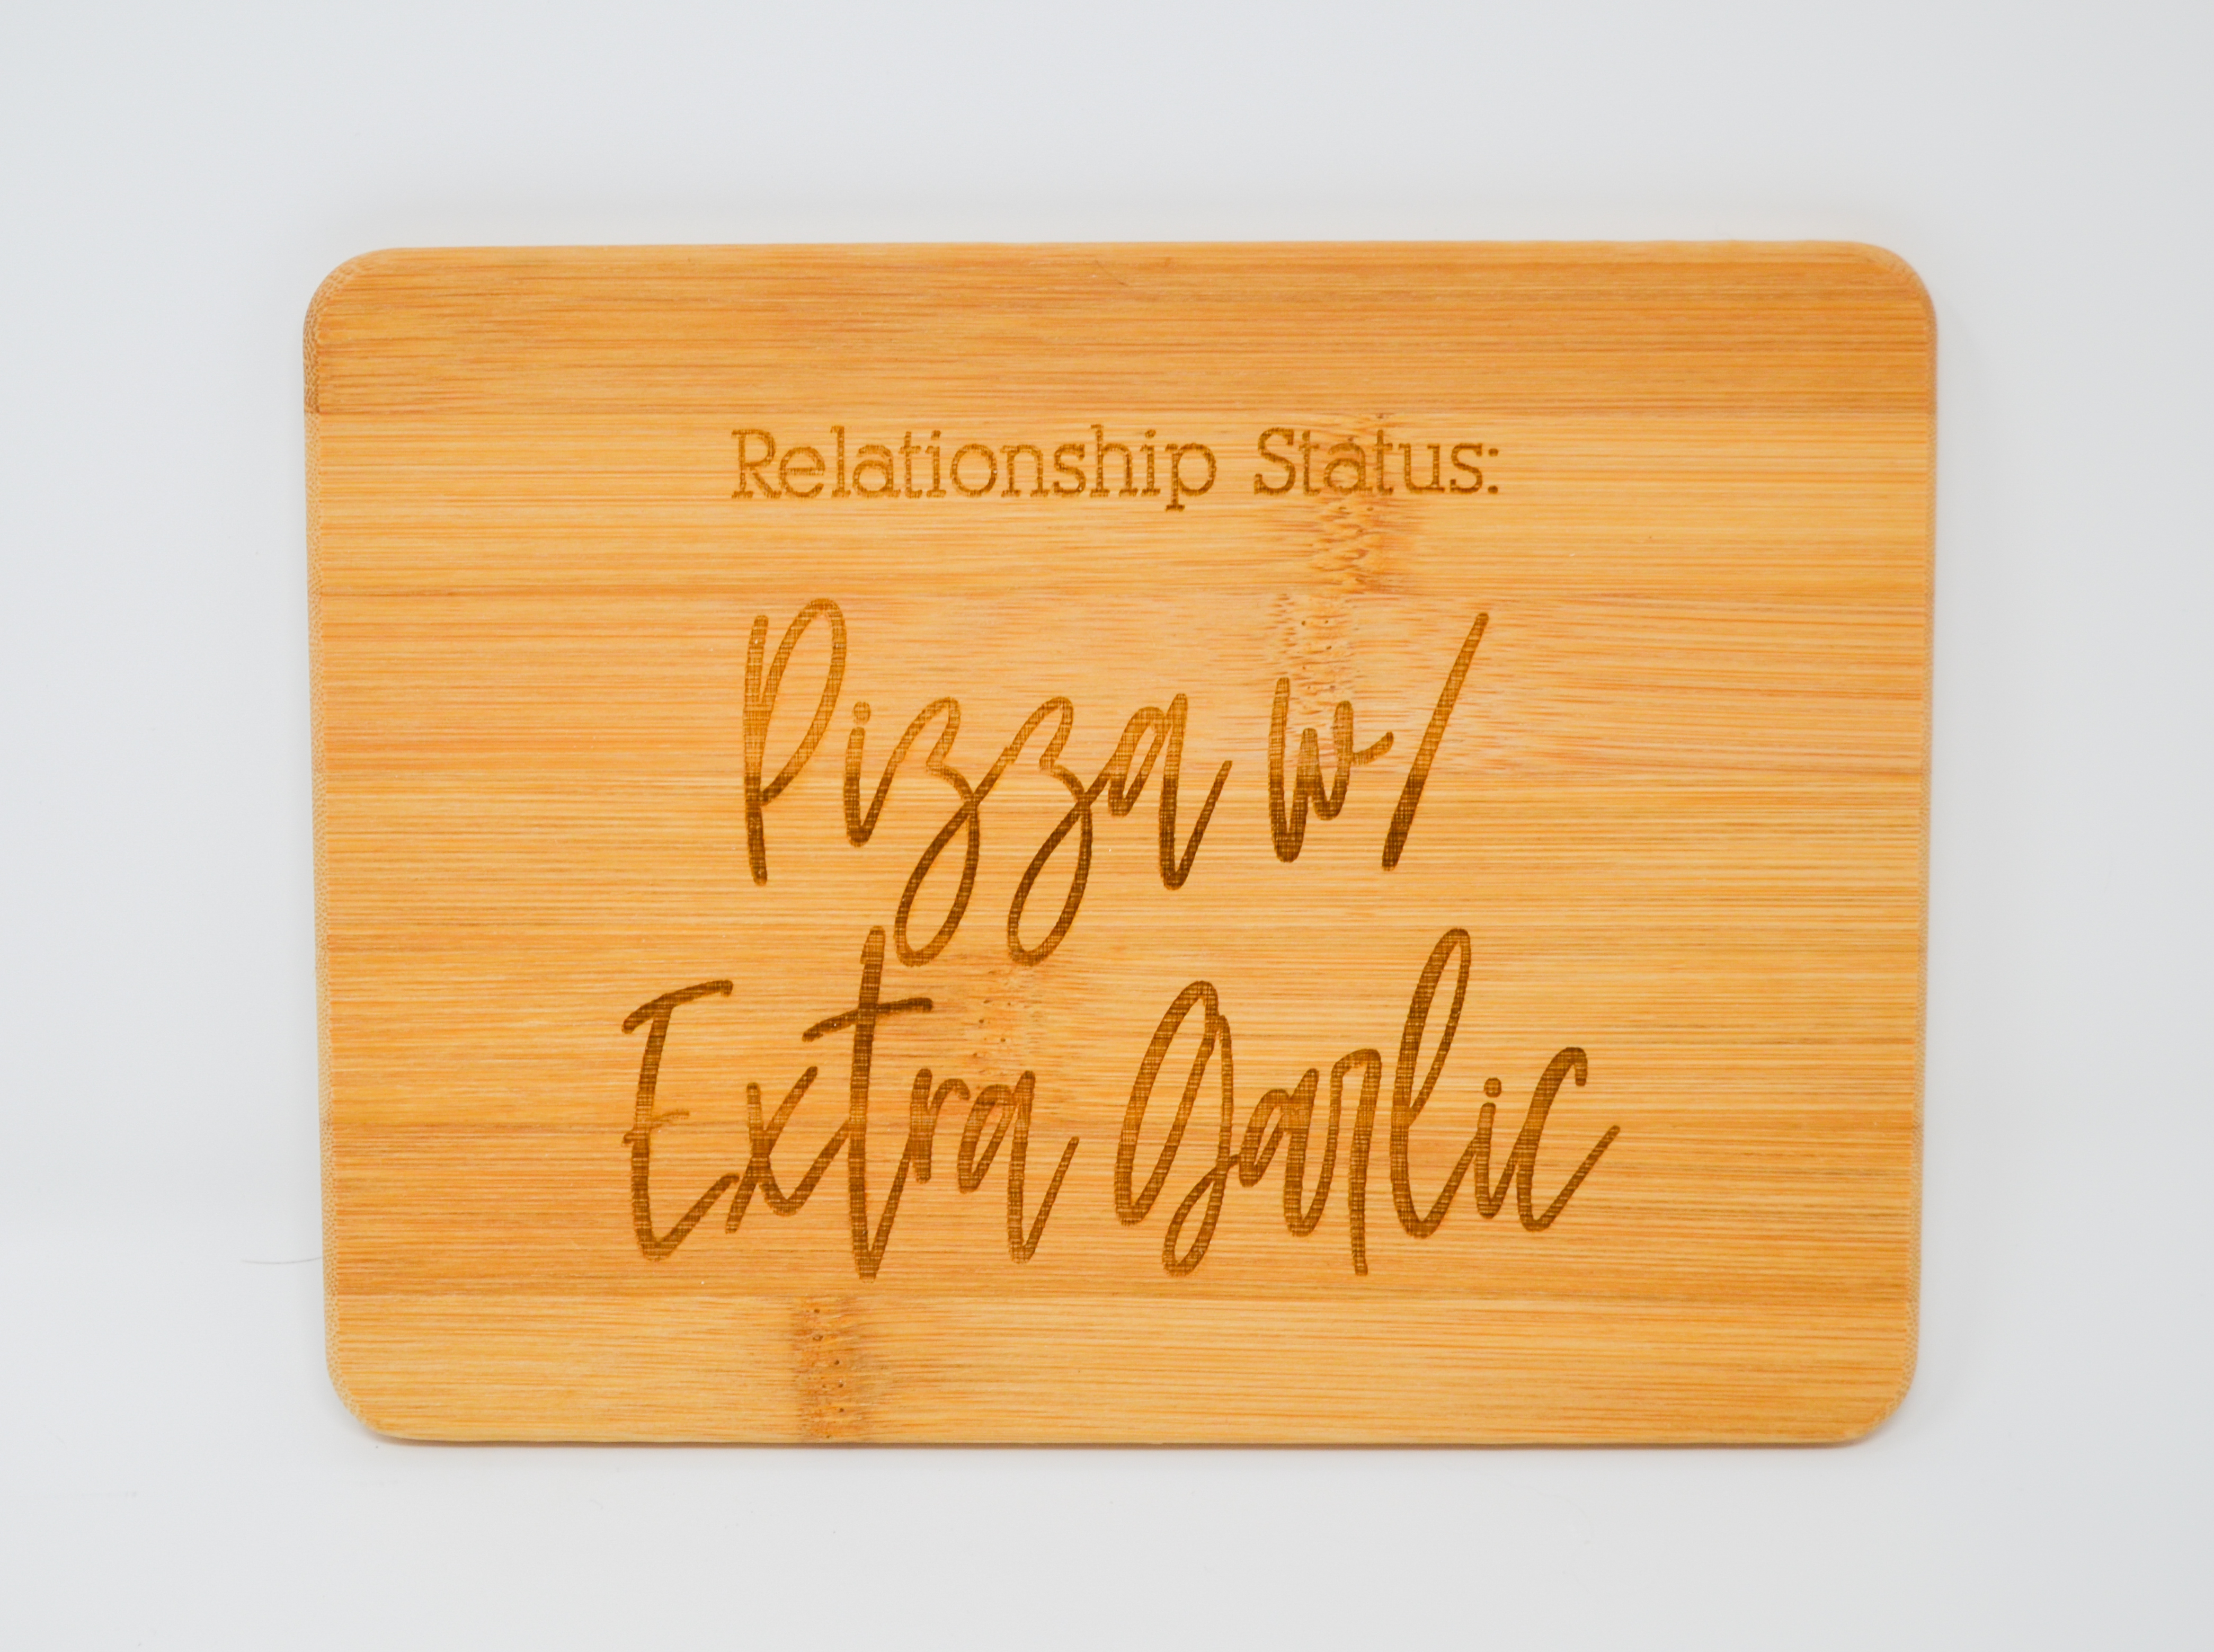 Relationship Extra Garlic-3